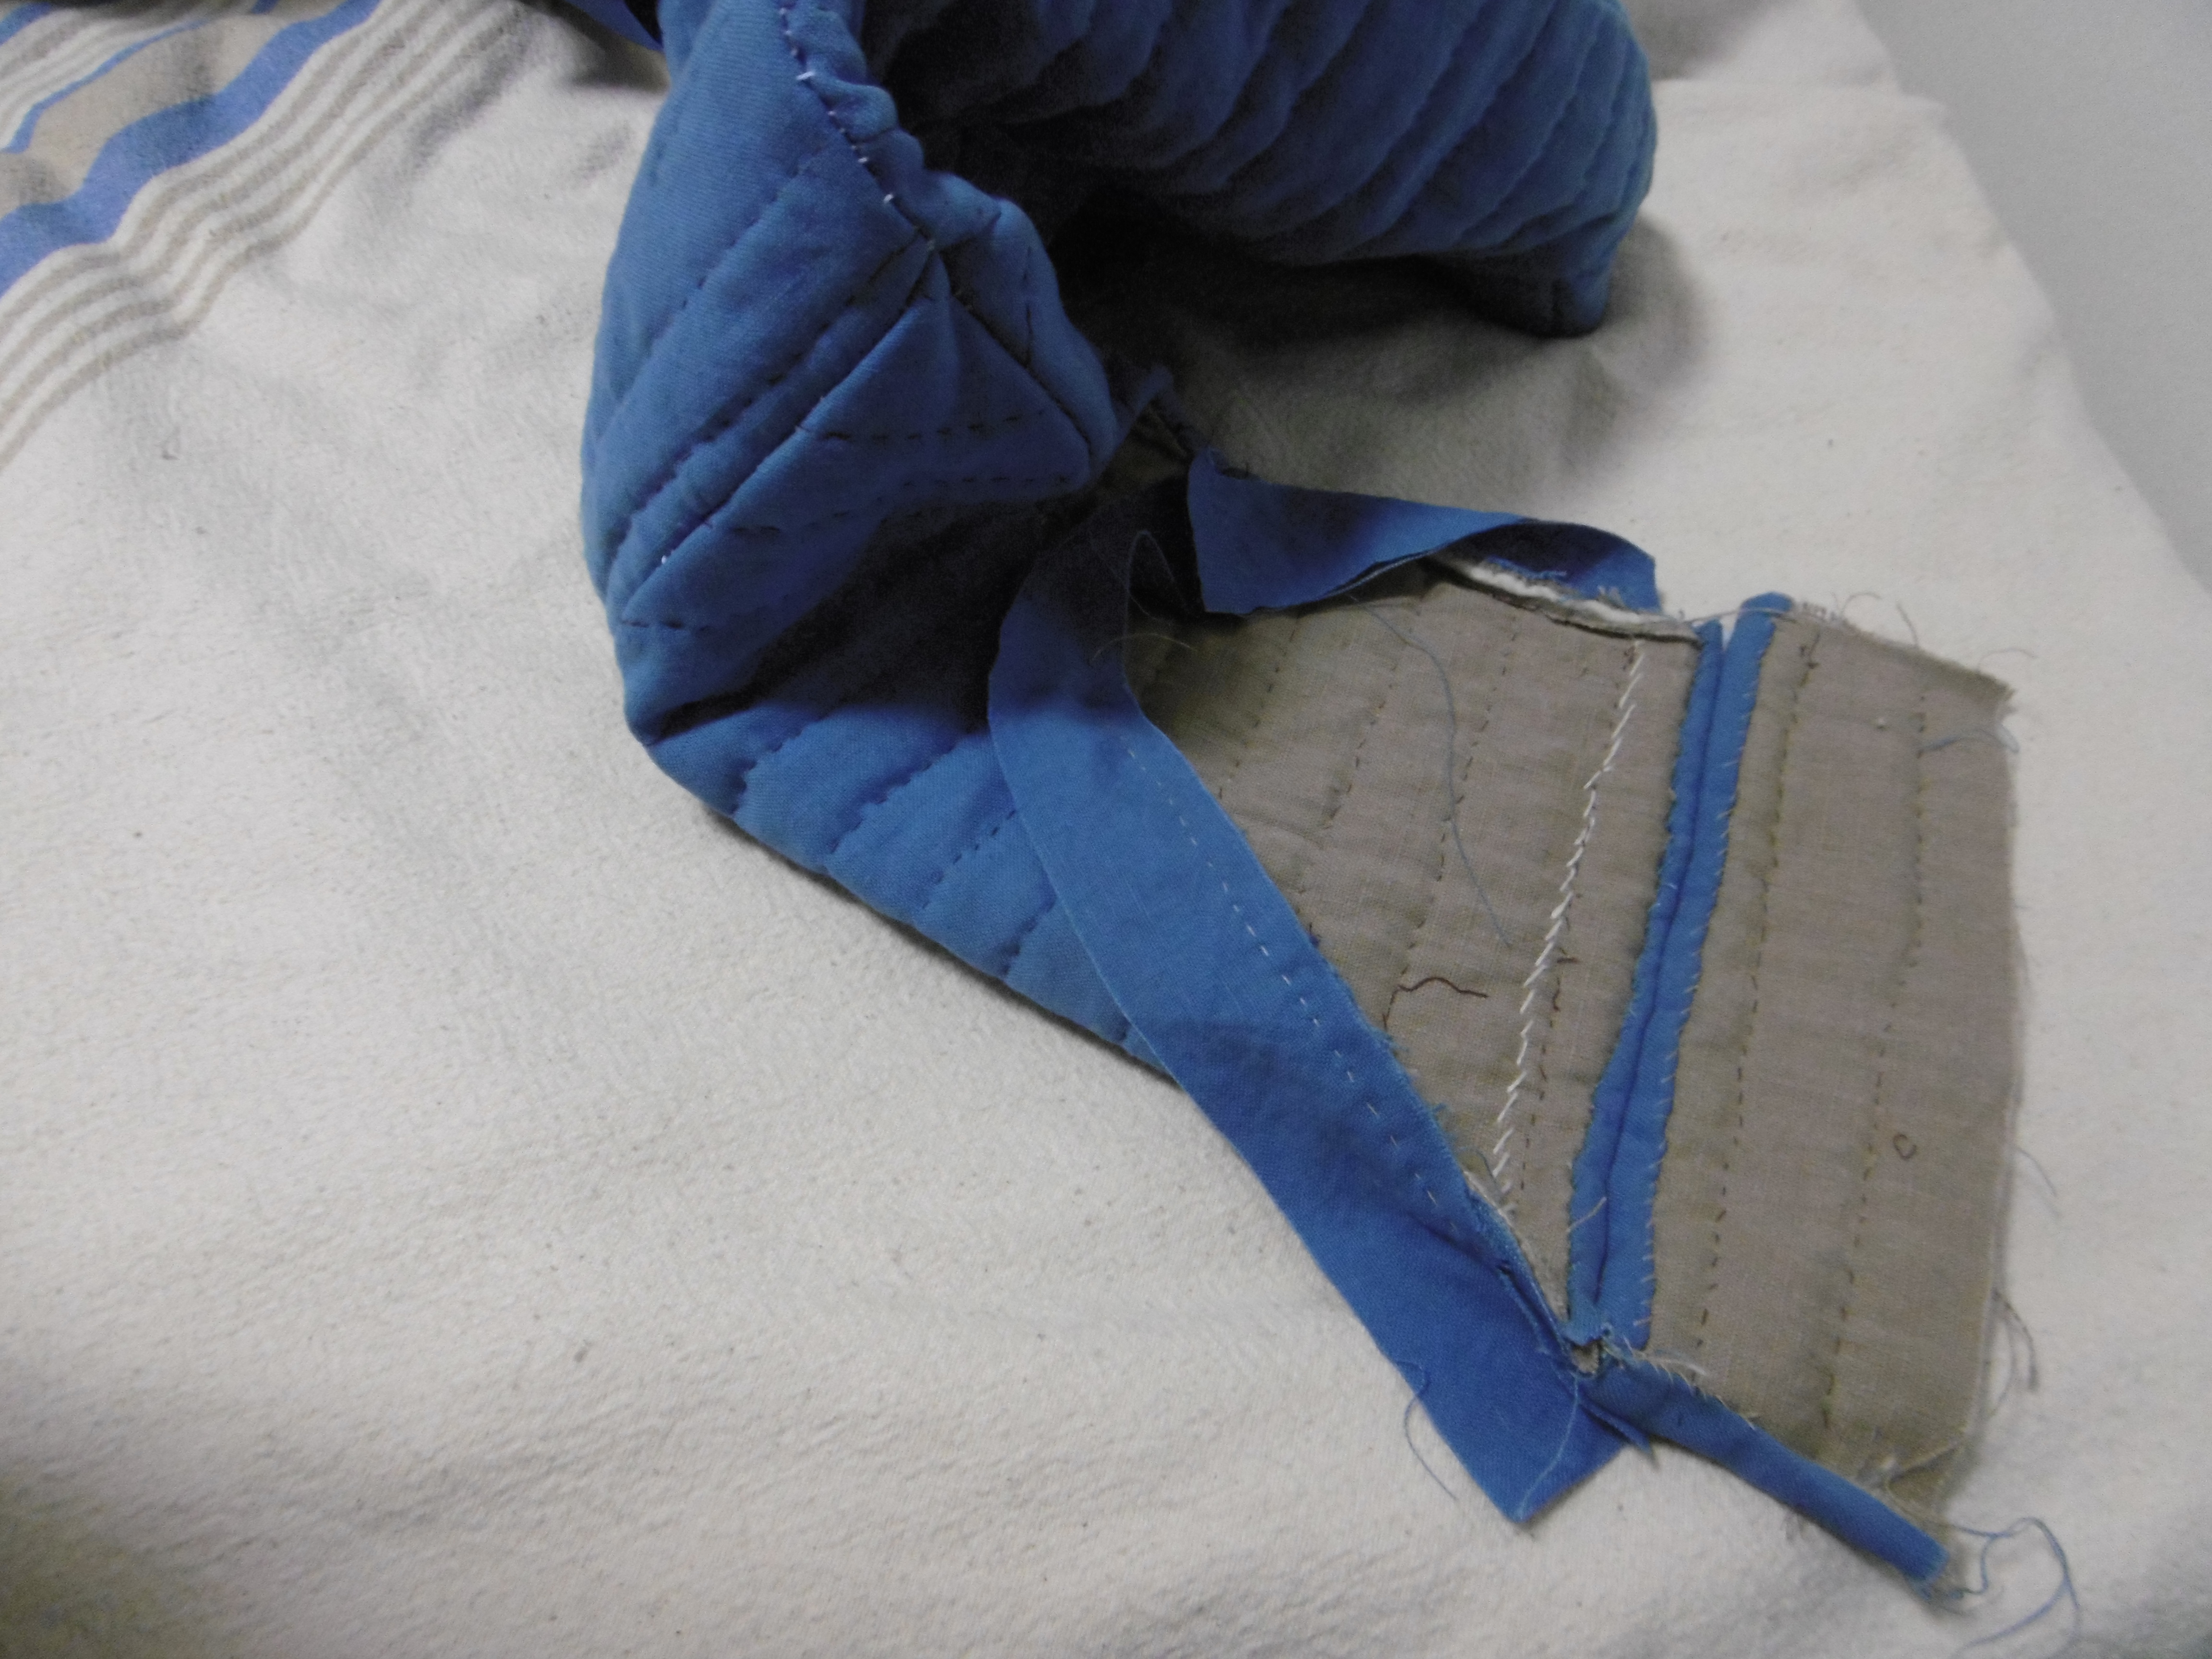 The unfinished end of the sleeve of a quilted garment against a cloth background